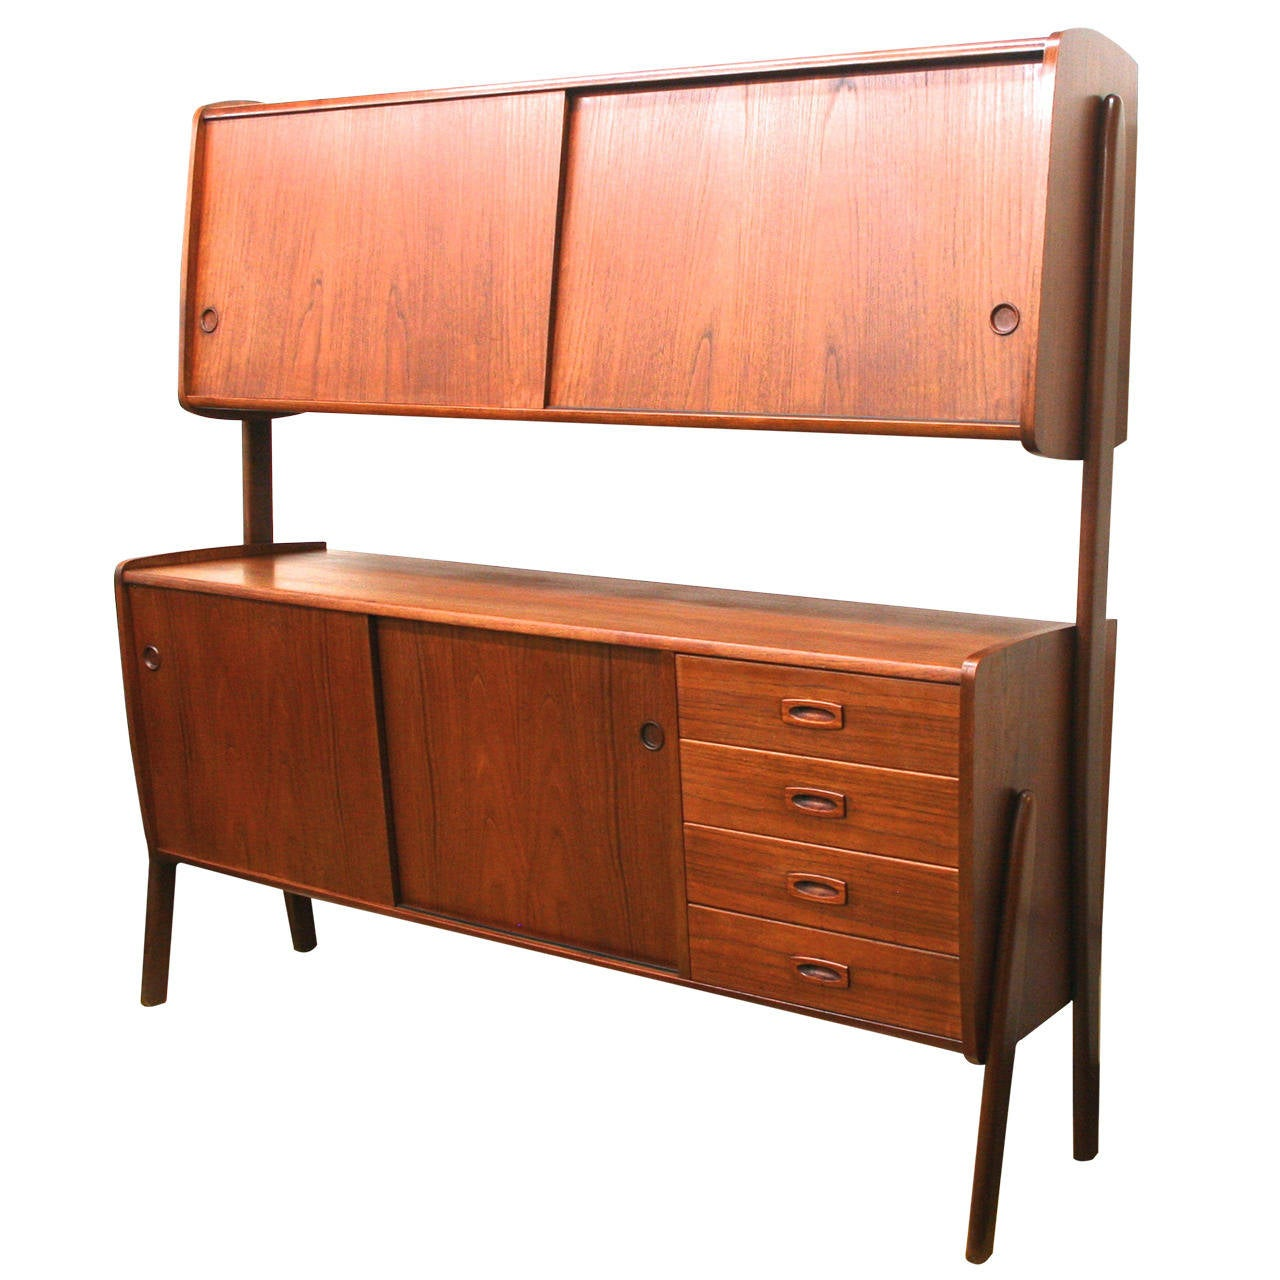 Italian modern teak credenza and dry bar at 1stdibs for Home dry bar furniture